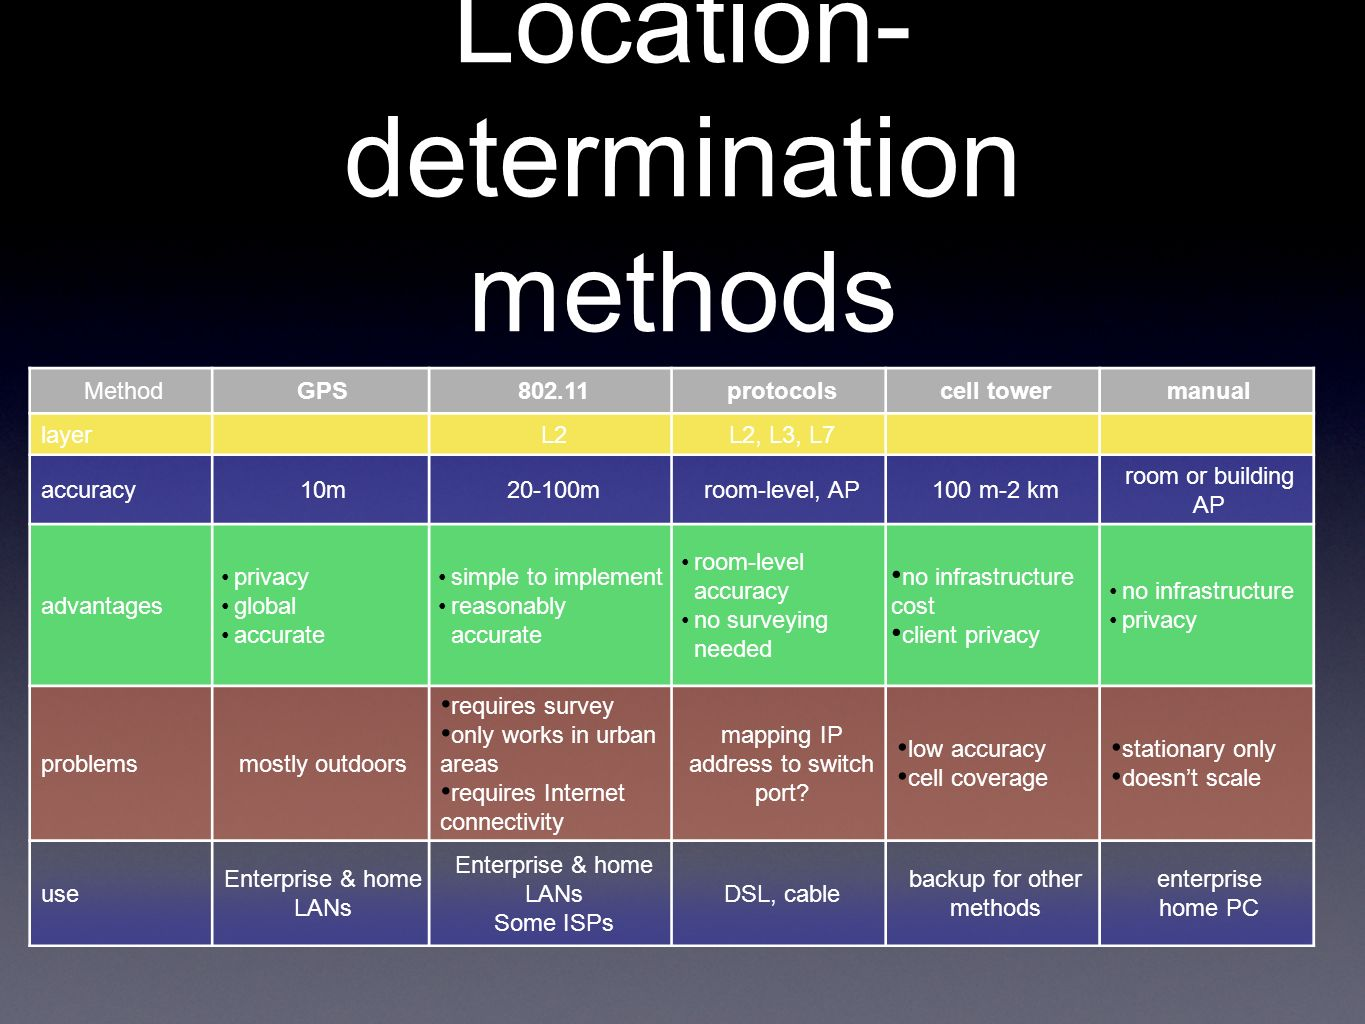 Location- determination methods MethodGPS802.11protocolscell towermanual layerL2L2, L3, L7 accuracy10m20-100mroom-level, AP100 m-2 km room or building AP advantages privacy global accurate simple to implement reasonably accurate room-level accuracy no surveying needed no infrastructure cost client privacy no infrastructure privacy problemsmostly outdoors requires survey only works in urban areas requires Internet connectivity mapping IP address to switch port.